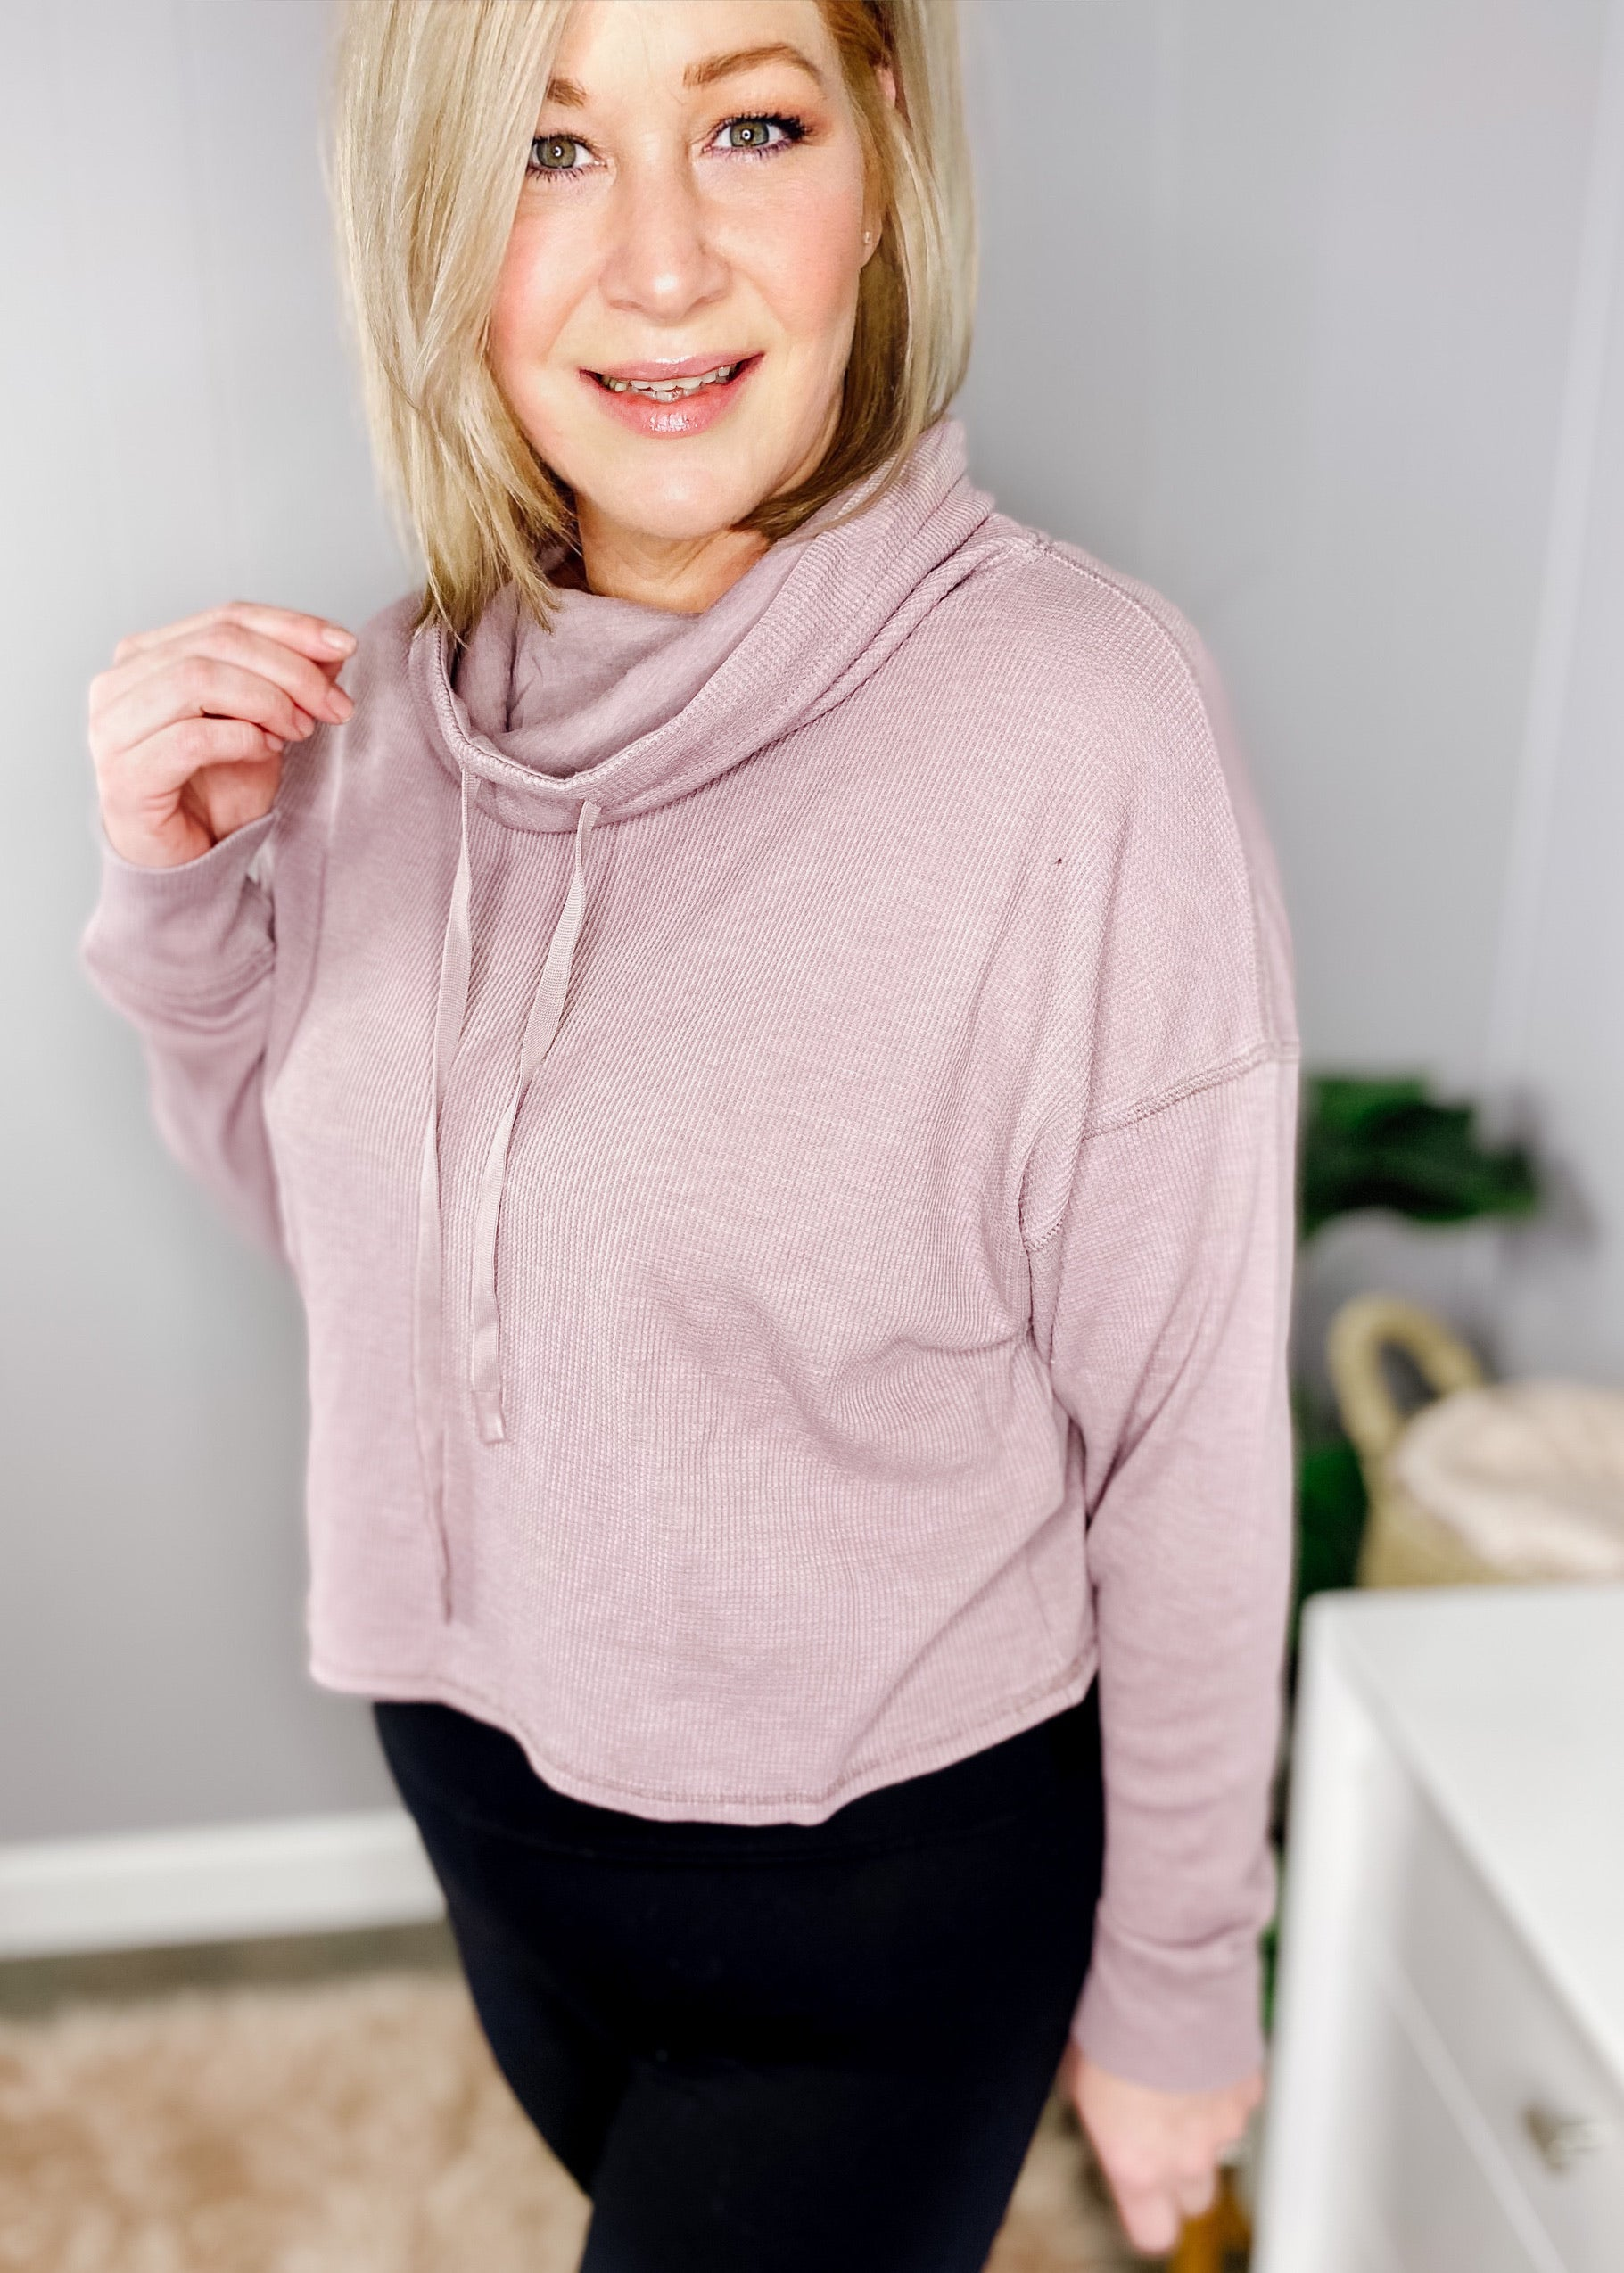 boxy pullover with mineral wash finish in dusty pink. Long sleeves shorter length.